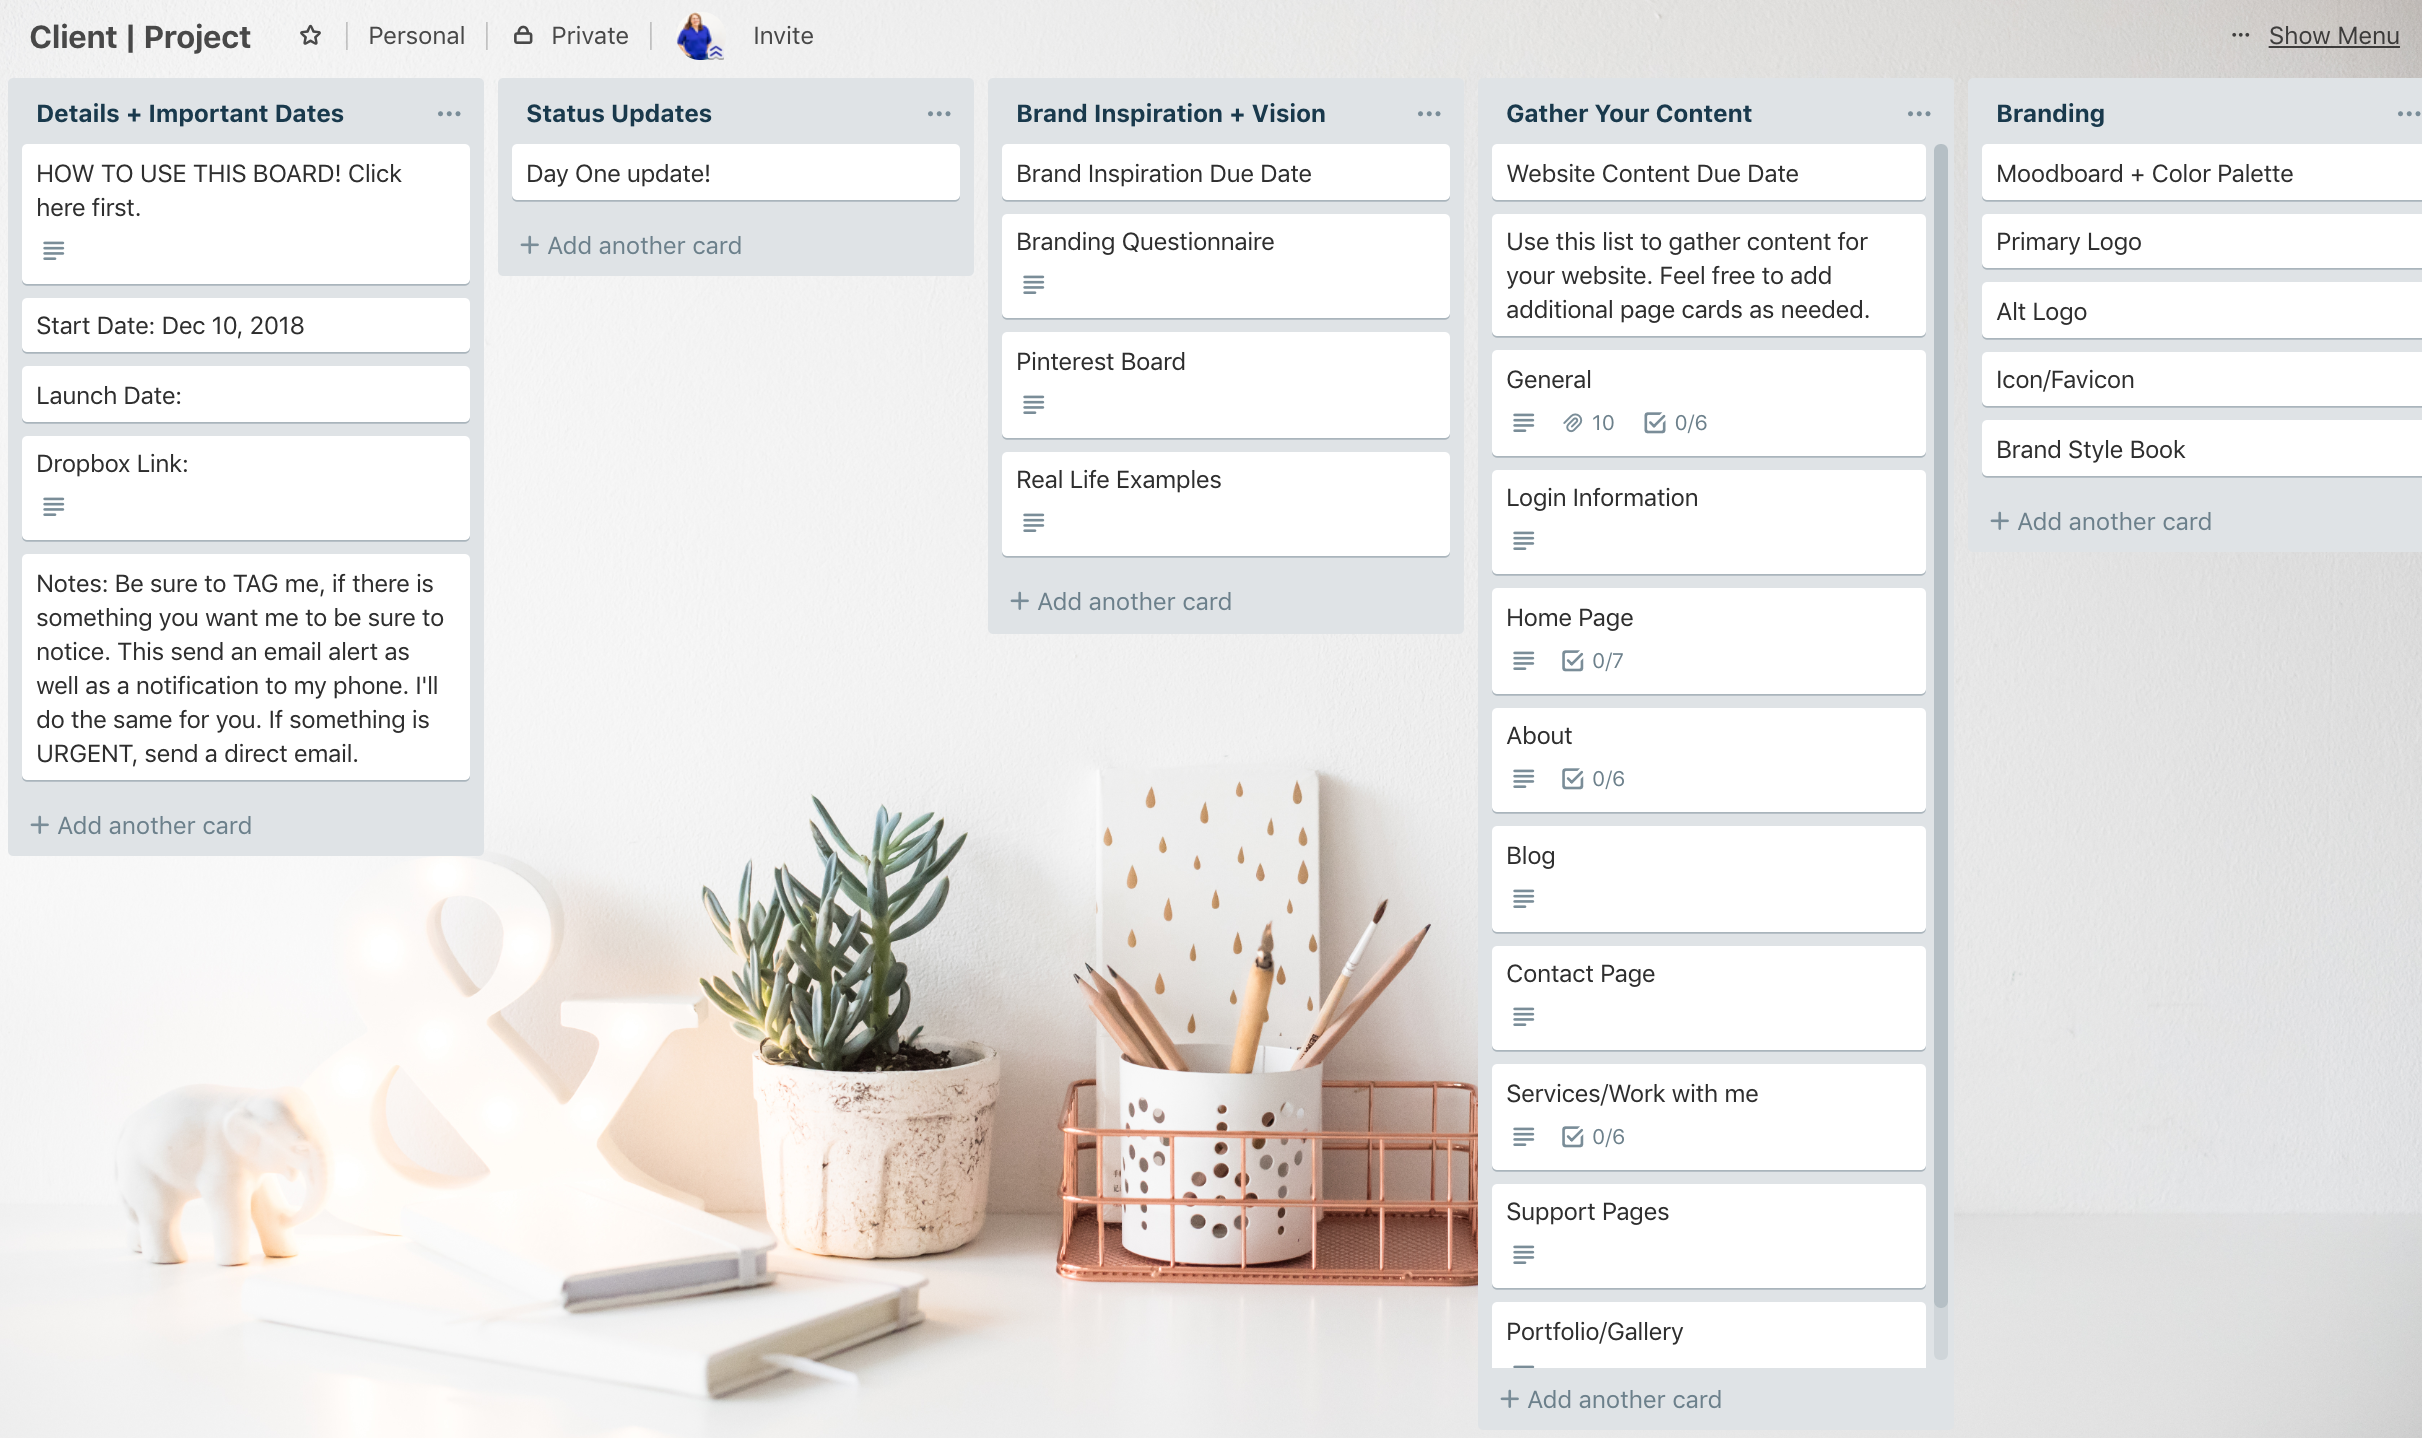 Client Communication Trello Board | 6 Trello Boards You Need To Be Using in Your Coaching Business from Alexander Design Co.